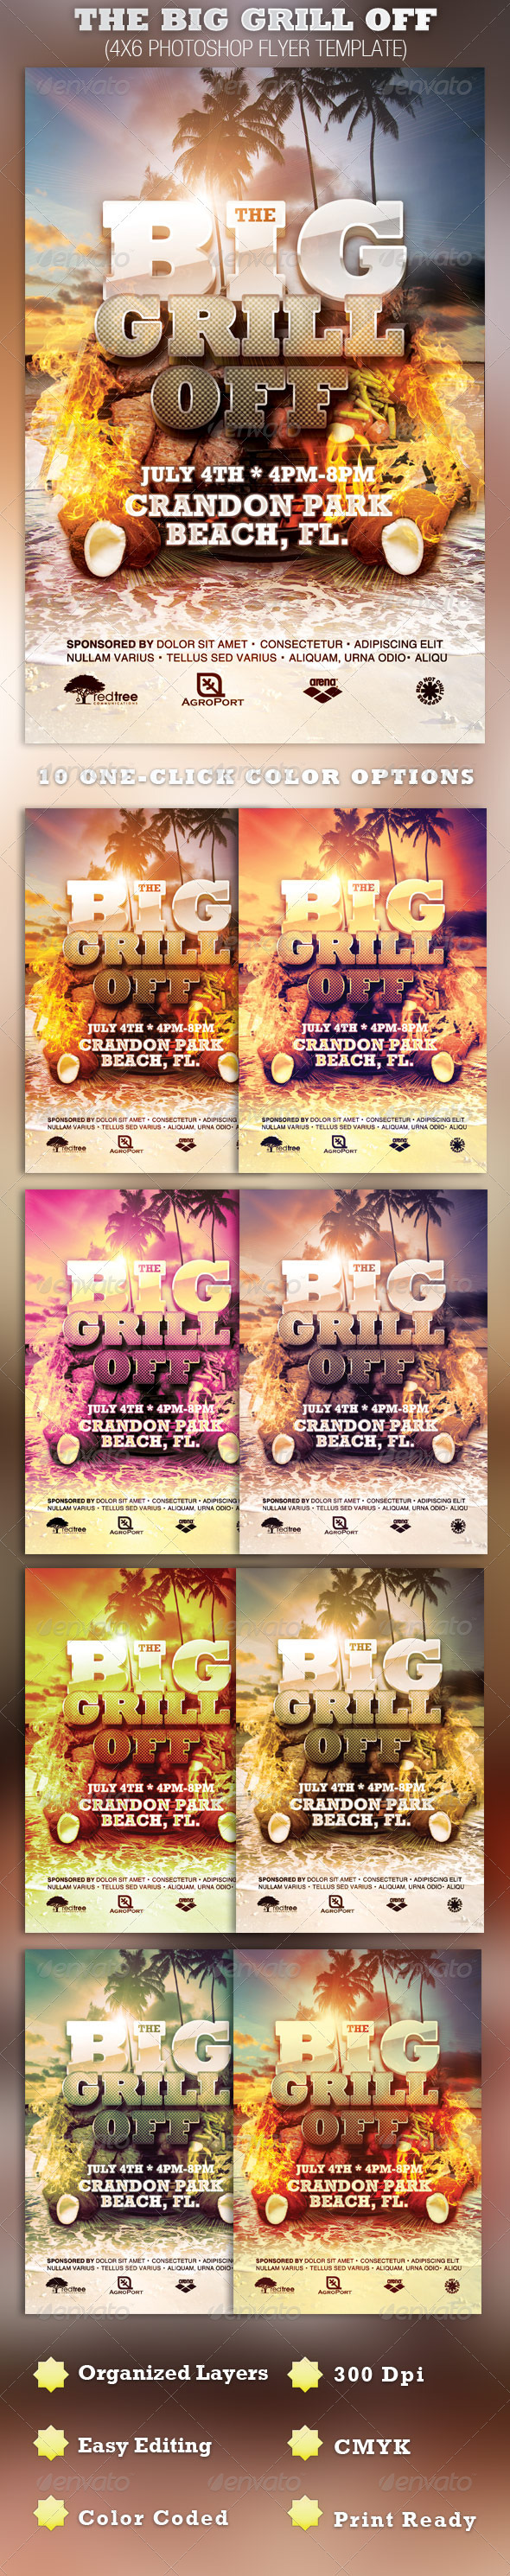 The Big Grill Off Flyer Template - Events Flyers